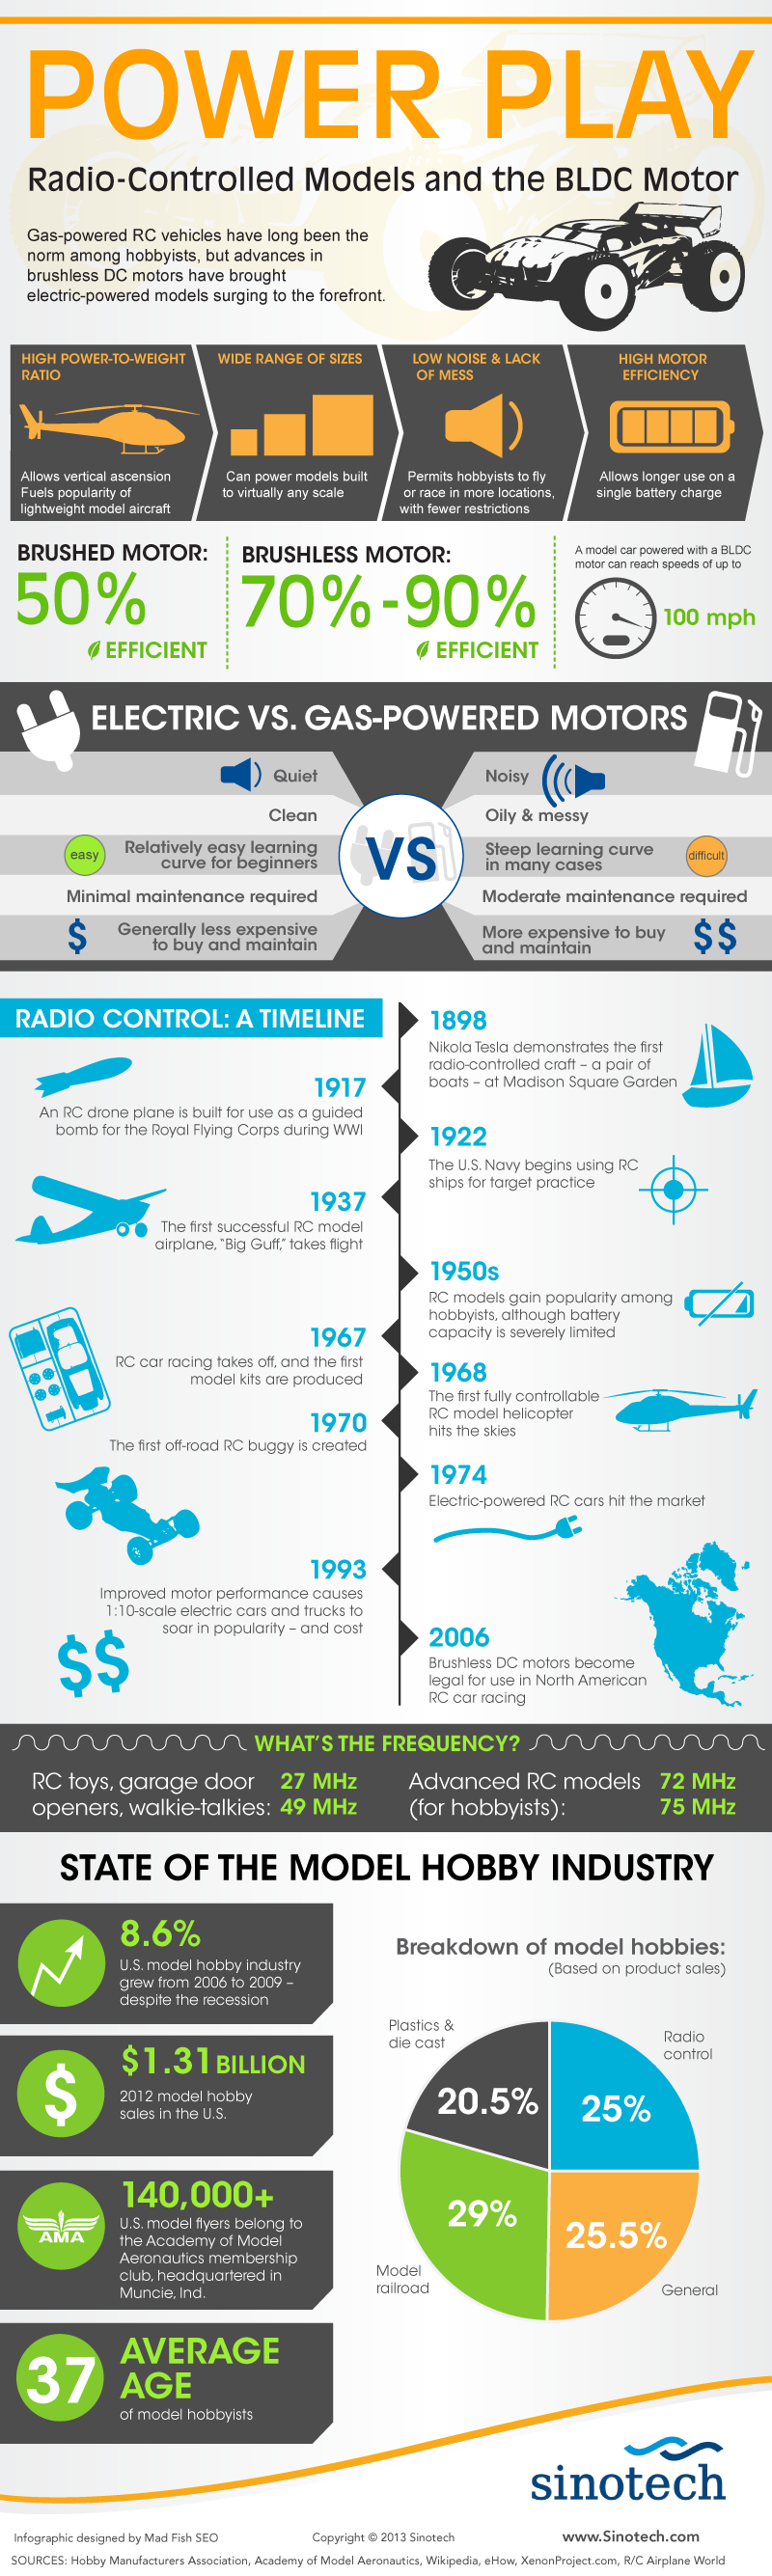 Radio-Controlled Models and the BLDC Motor - Infographic